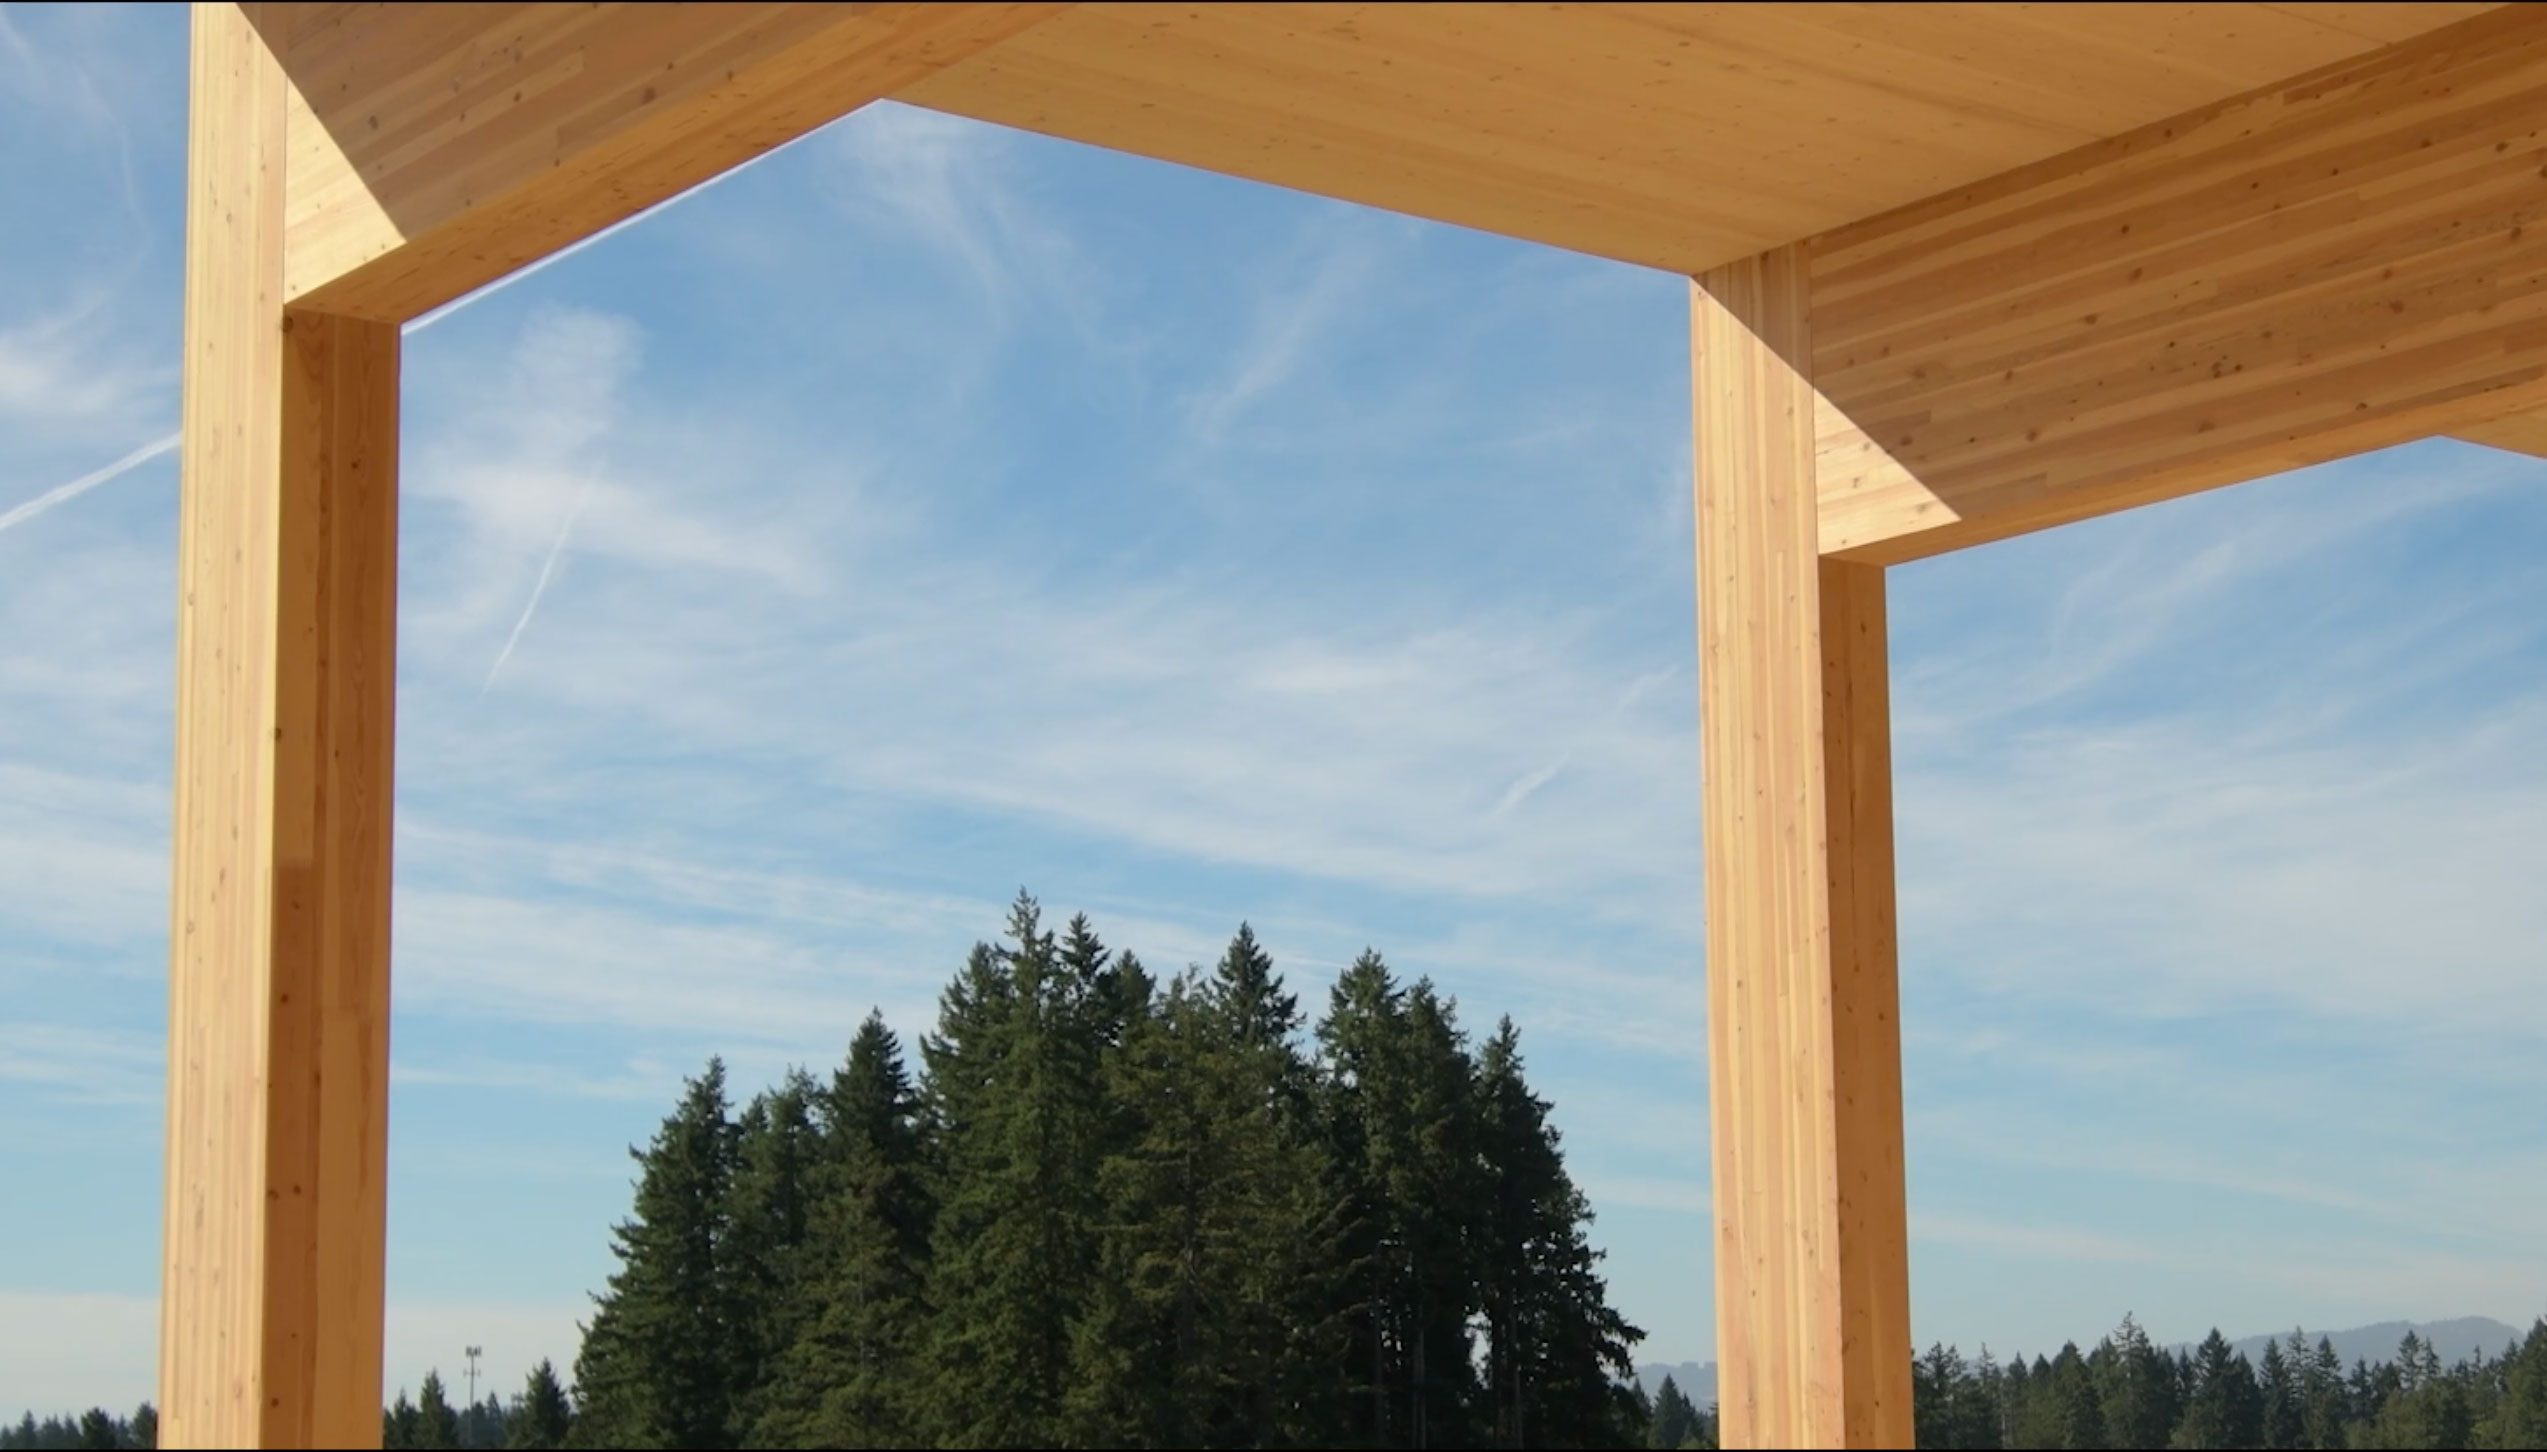 Image of wood construction